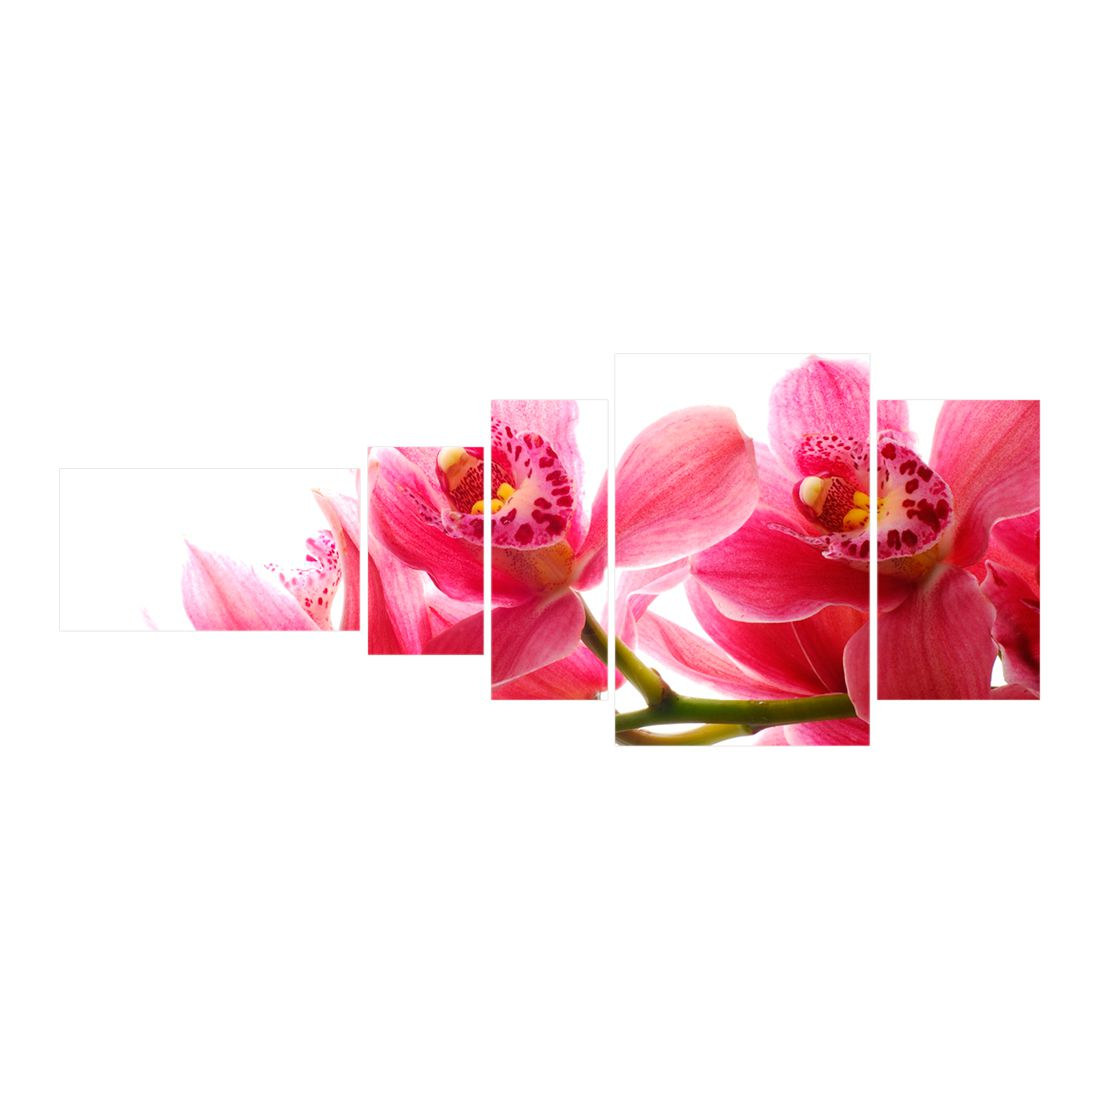 Leinwandbild Pink Orchidee, 200×80 cm, Gallery of Innovative Art online bestellen